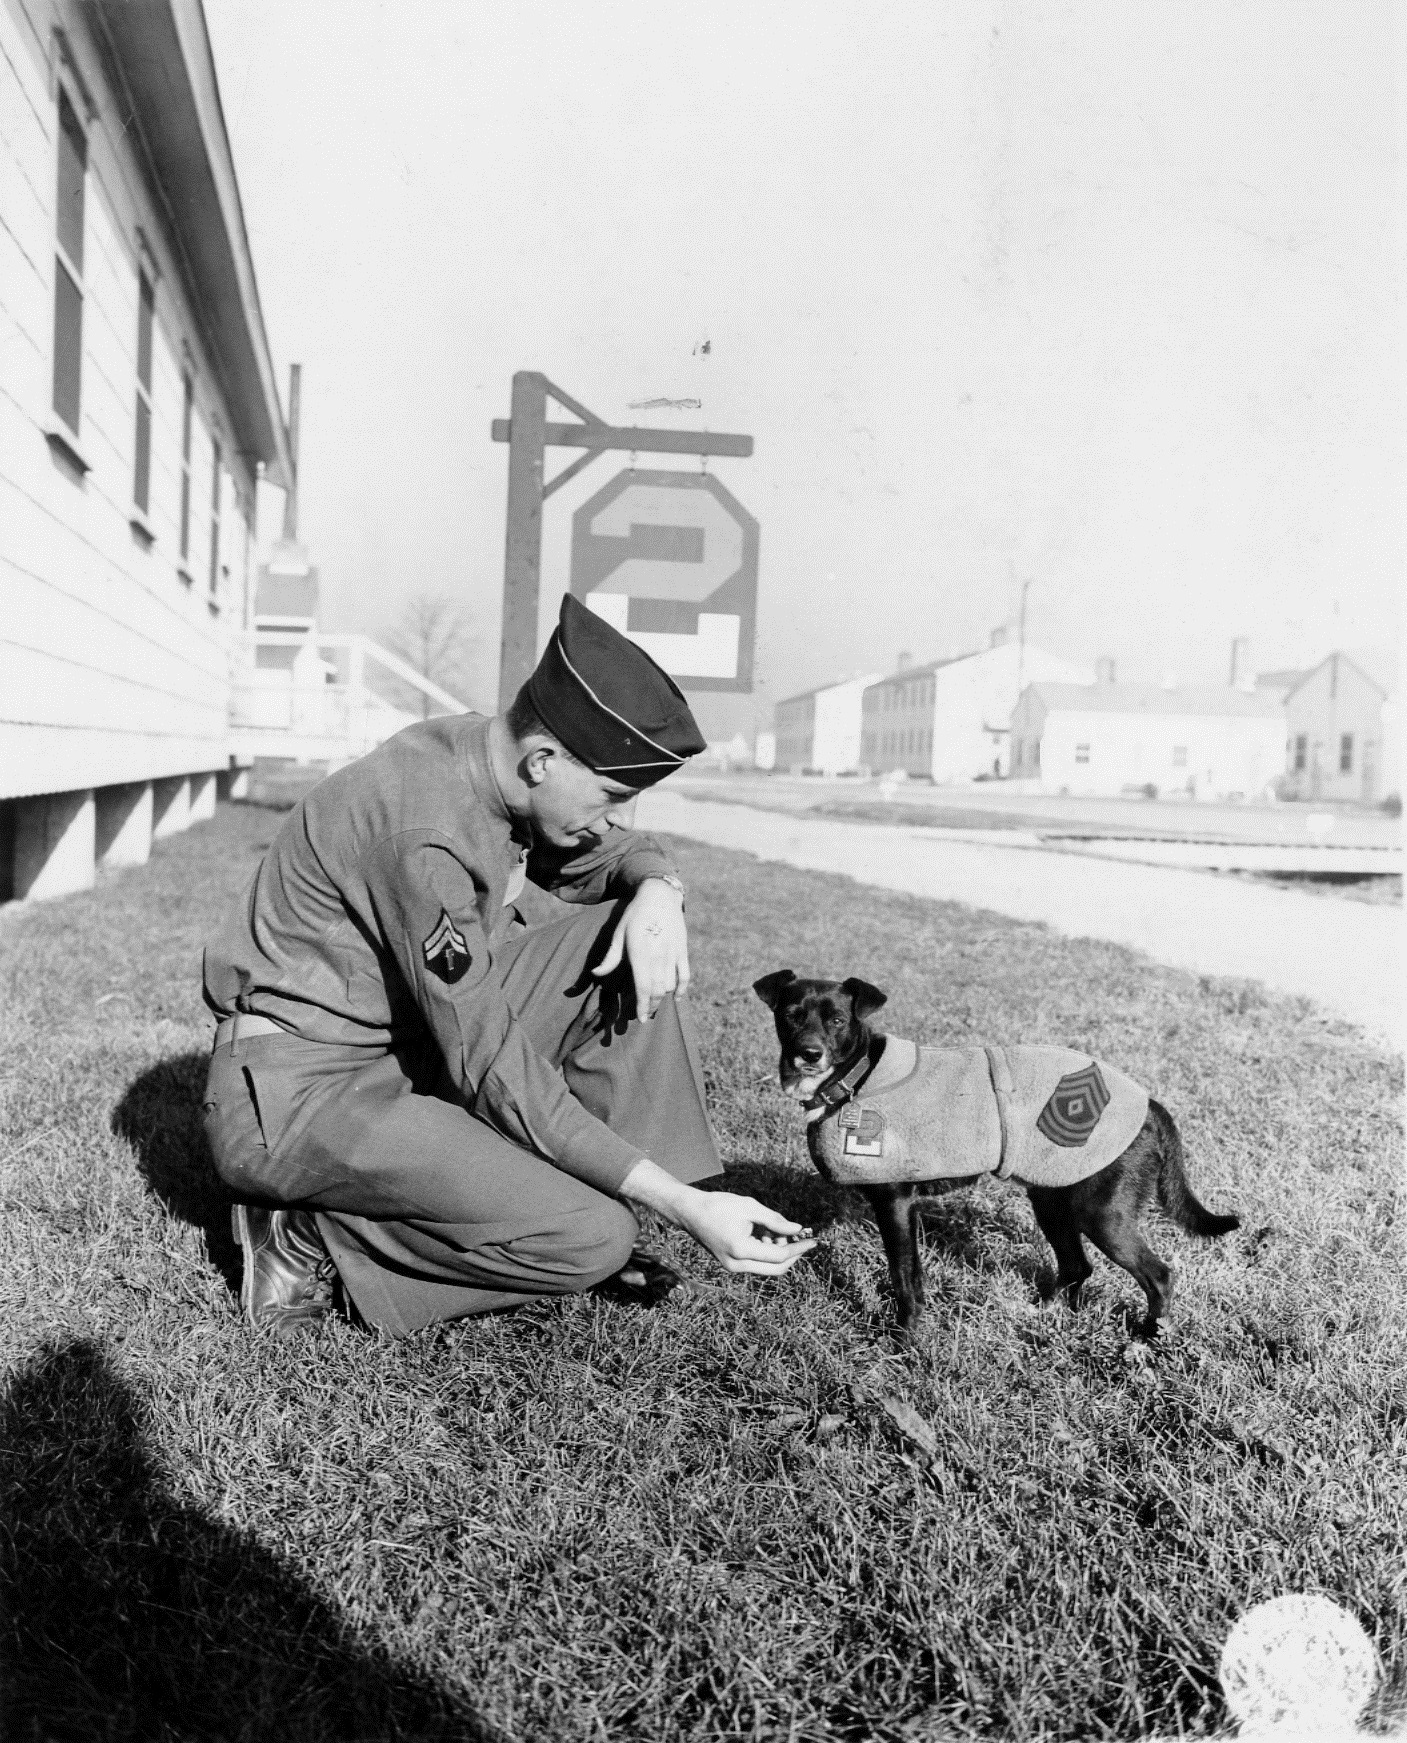 Soldier offering mascot 'Buddy' a treat, 1943 December 4.